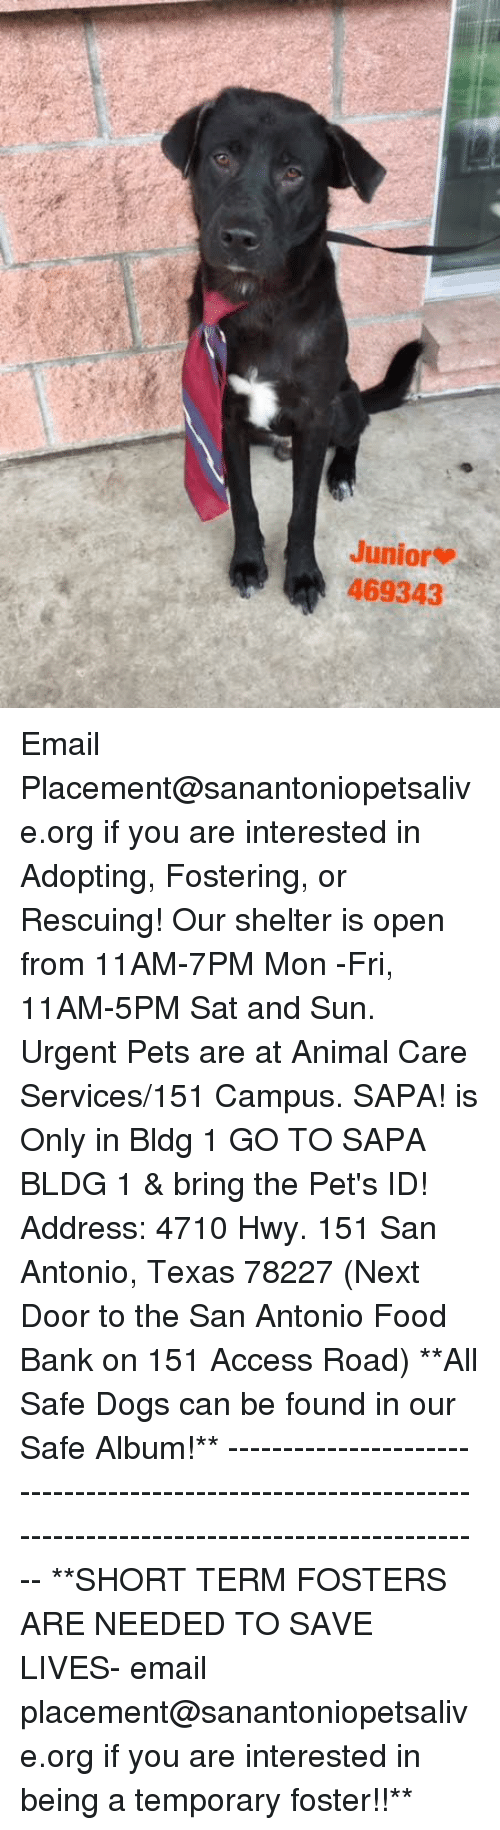 Dogs, Food, and Memes: Junior  469343 Email Placement@sanantoniopetsalive.org if you are interested in Adopting, Fostering, or Rescuing!  Our shelter is open from 11AM-7PM Mon -Fri, 11AM-5PM Sat and Sun.  Urgent Pets are at Animal Care Services/151 Campus. SAPA! is Only in Bldg 1 GO TO SAPA BLDG 1 & bring the Pet's ID! Address: 4710 Hwy. 151 San Antonio, Texas 78227 (Next Door to the San Antonio Food Bank on 151 Access Road)  **All Safe Dogs can be found in our Safe Album!** ---------------------------------------------------------------------------------------------------------- **SHORT TERM FOSTERS ARE NEEDED TO SAVE LIVES- email placement@sanantoniopetsalive.org if you are interested in being a temporary foster!!**